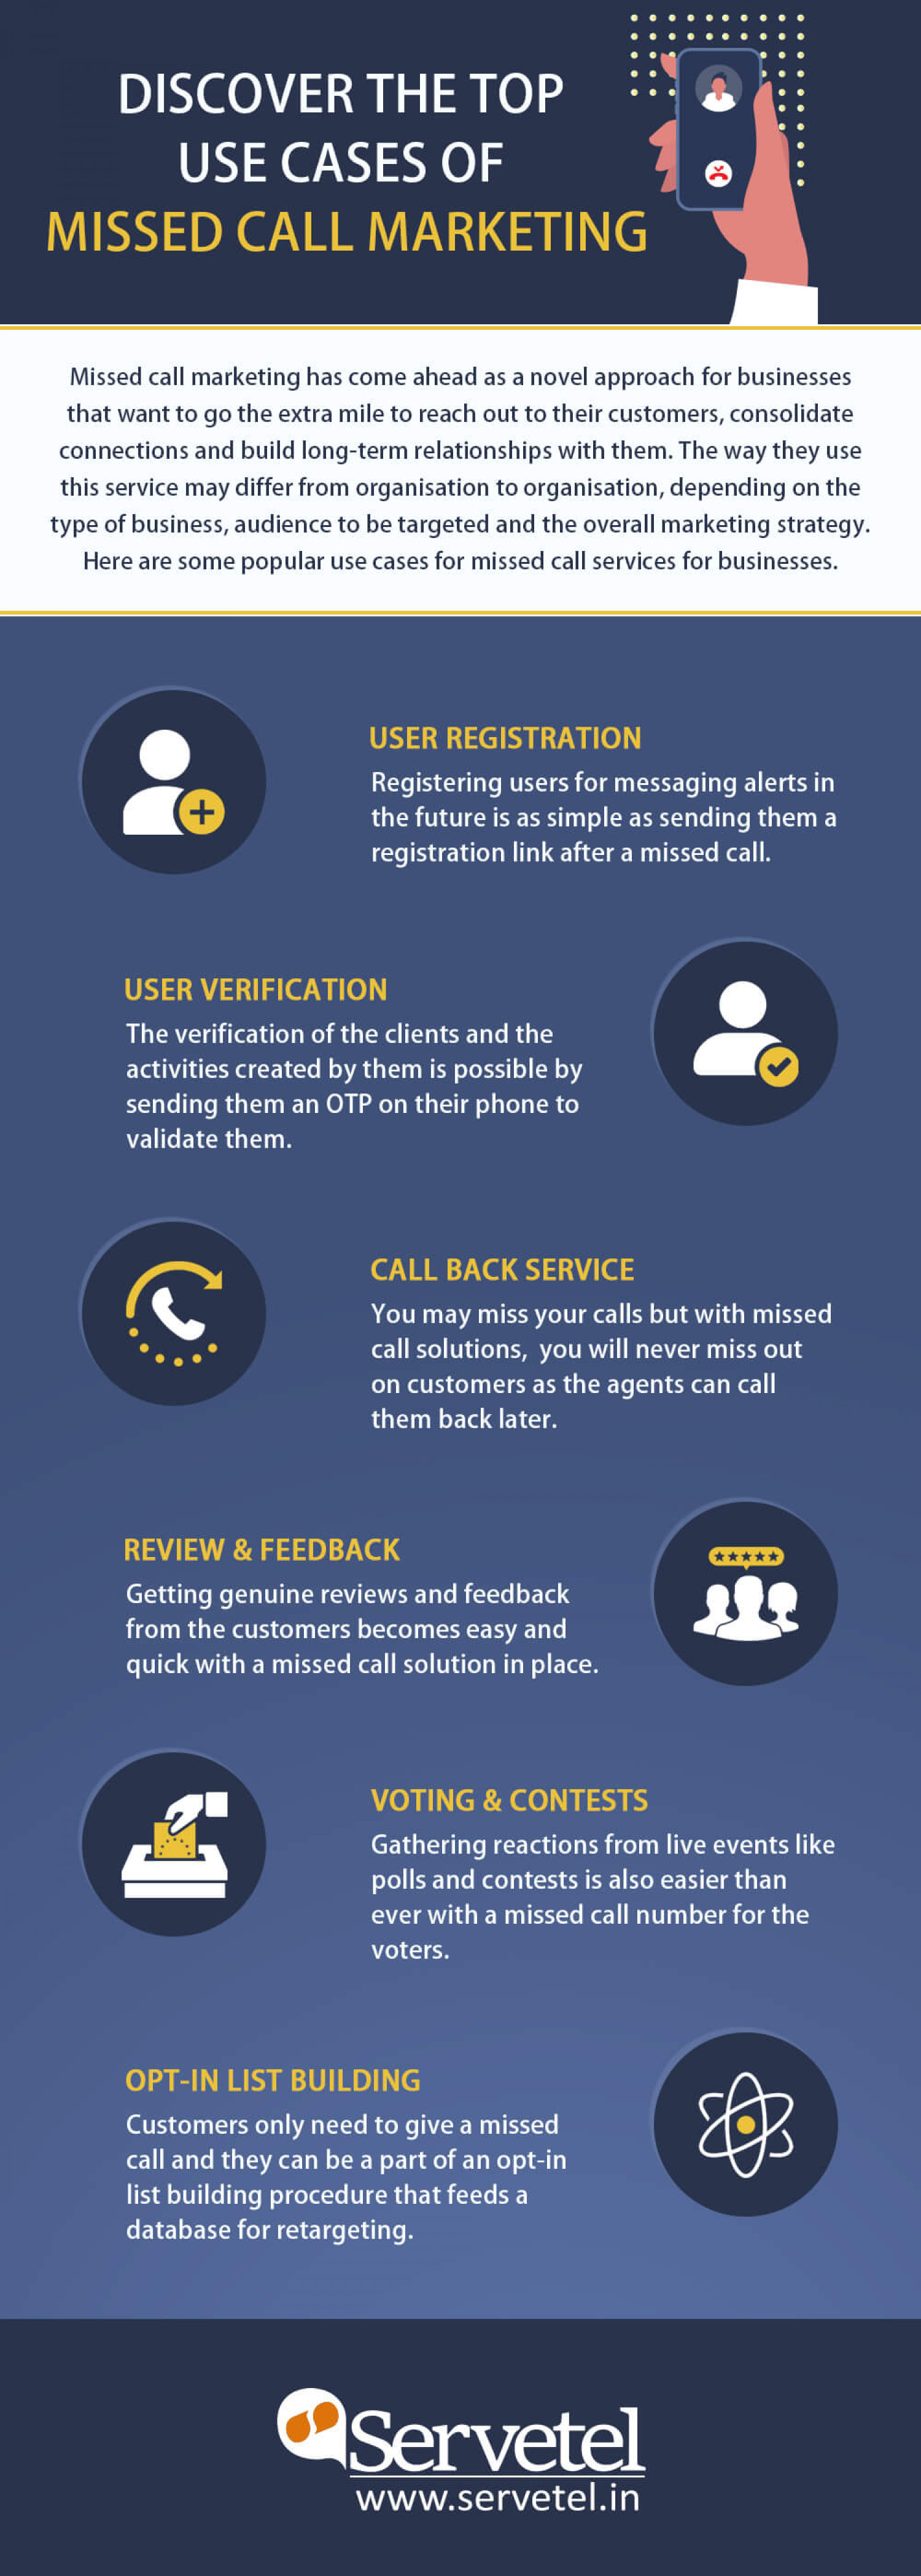 Missed Call Marketing: Top 6 Use Cases Infographic